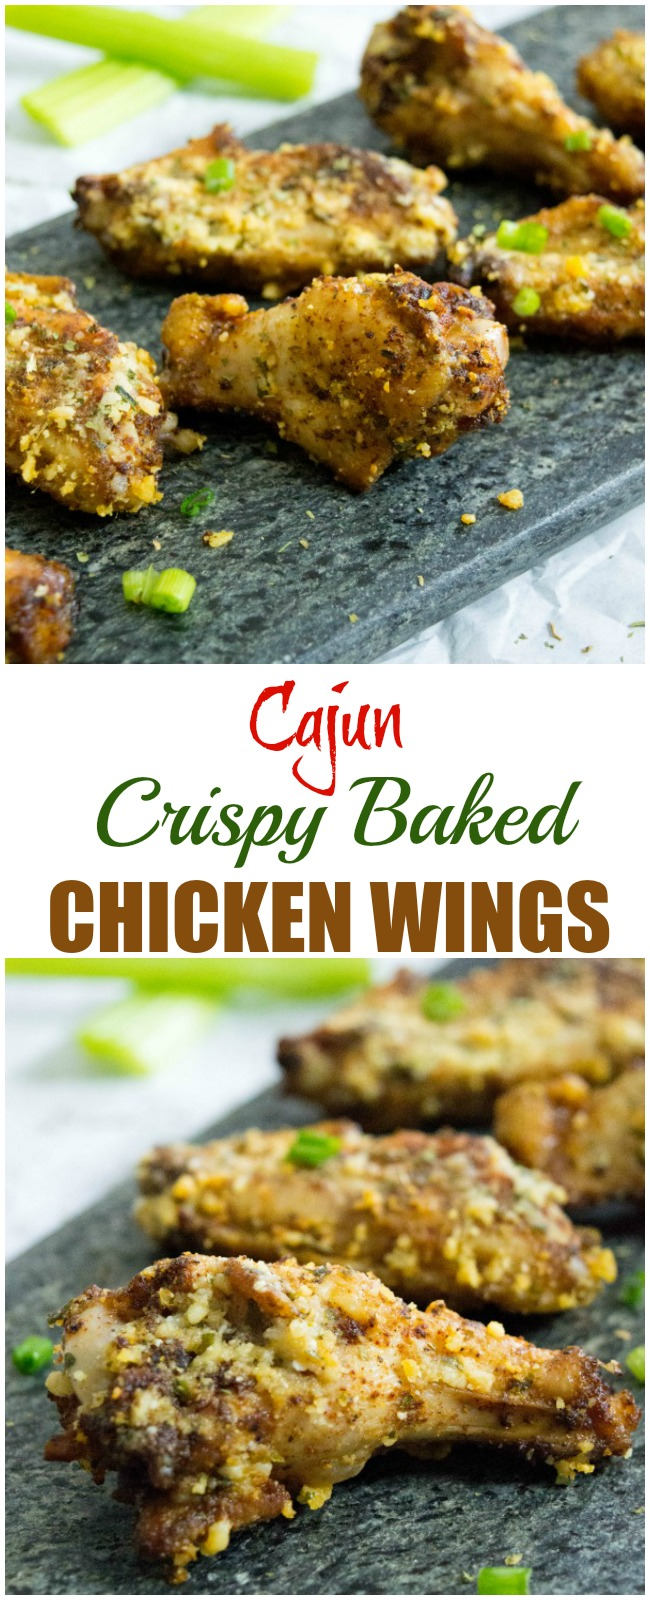 These are some delicious and healthy Cajun Crispy Baked Chicken Wings!  Easy to make wings that everyone will love!